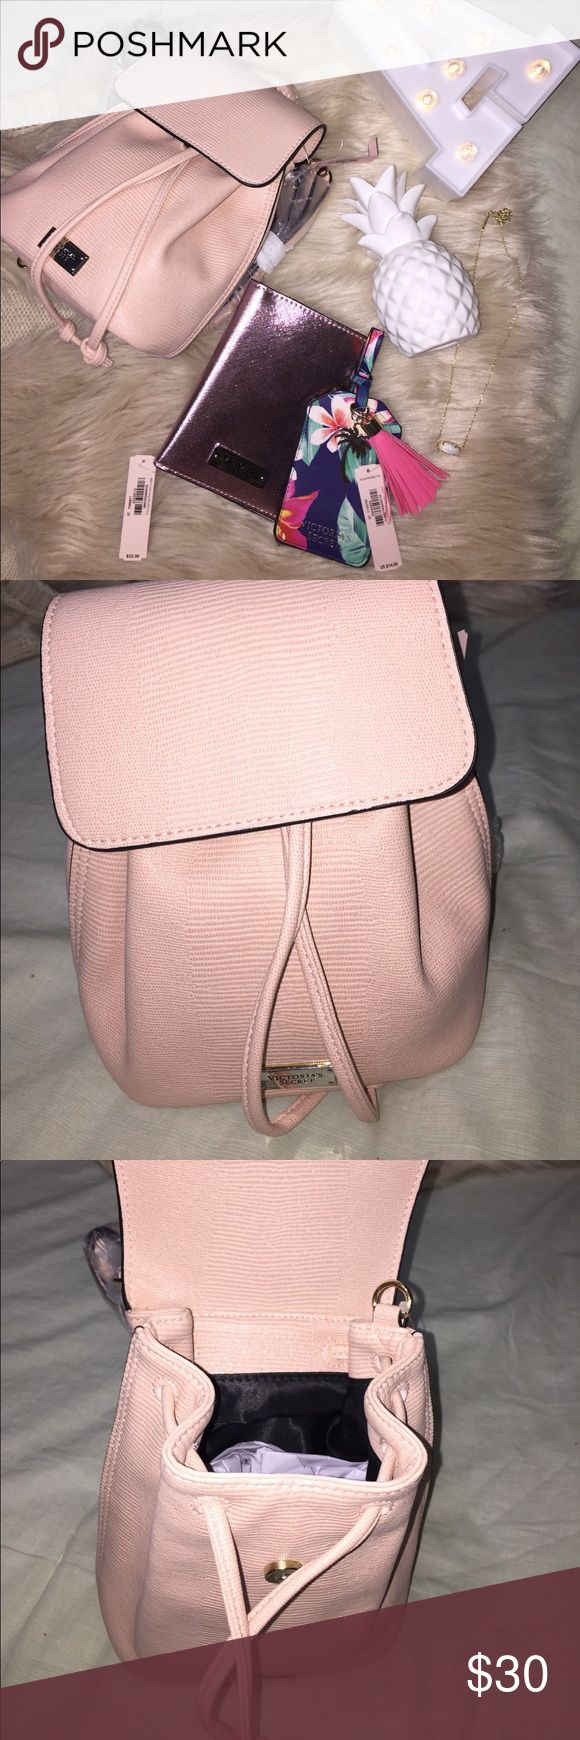 Victoria's Secret mini backpack. Light pink VS backpack. Brand new with tag. No trades. Victoria's Secret Bags Backpacks